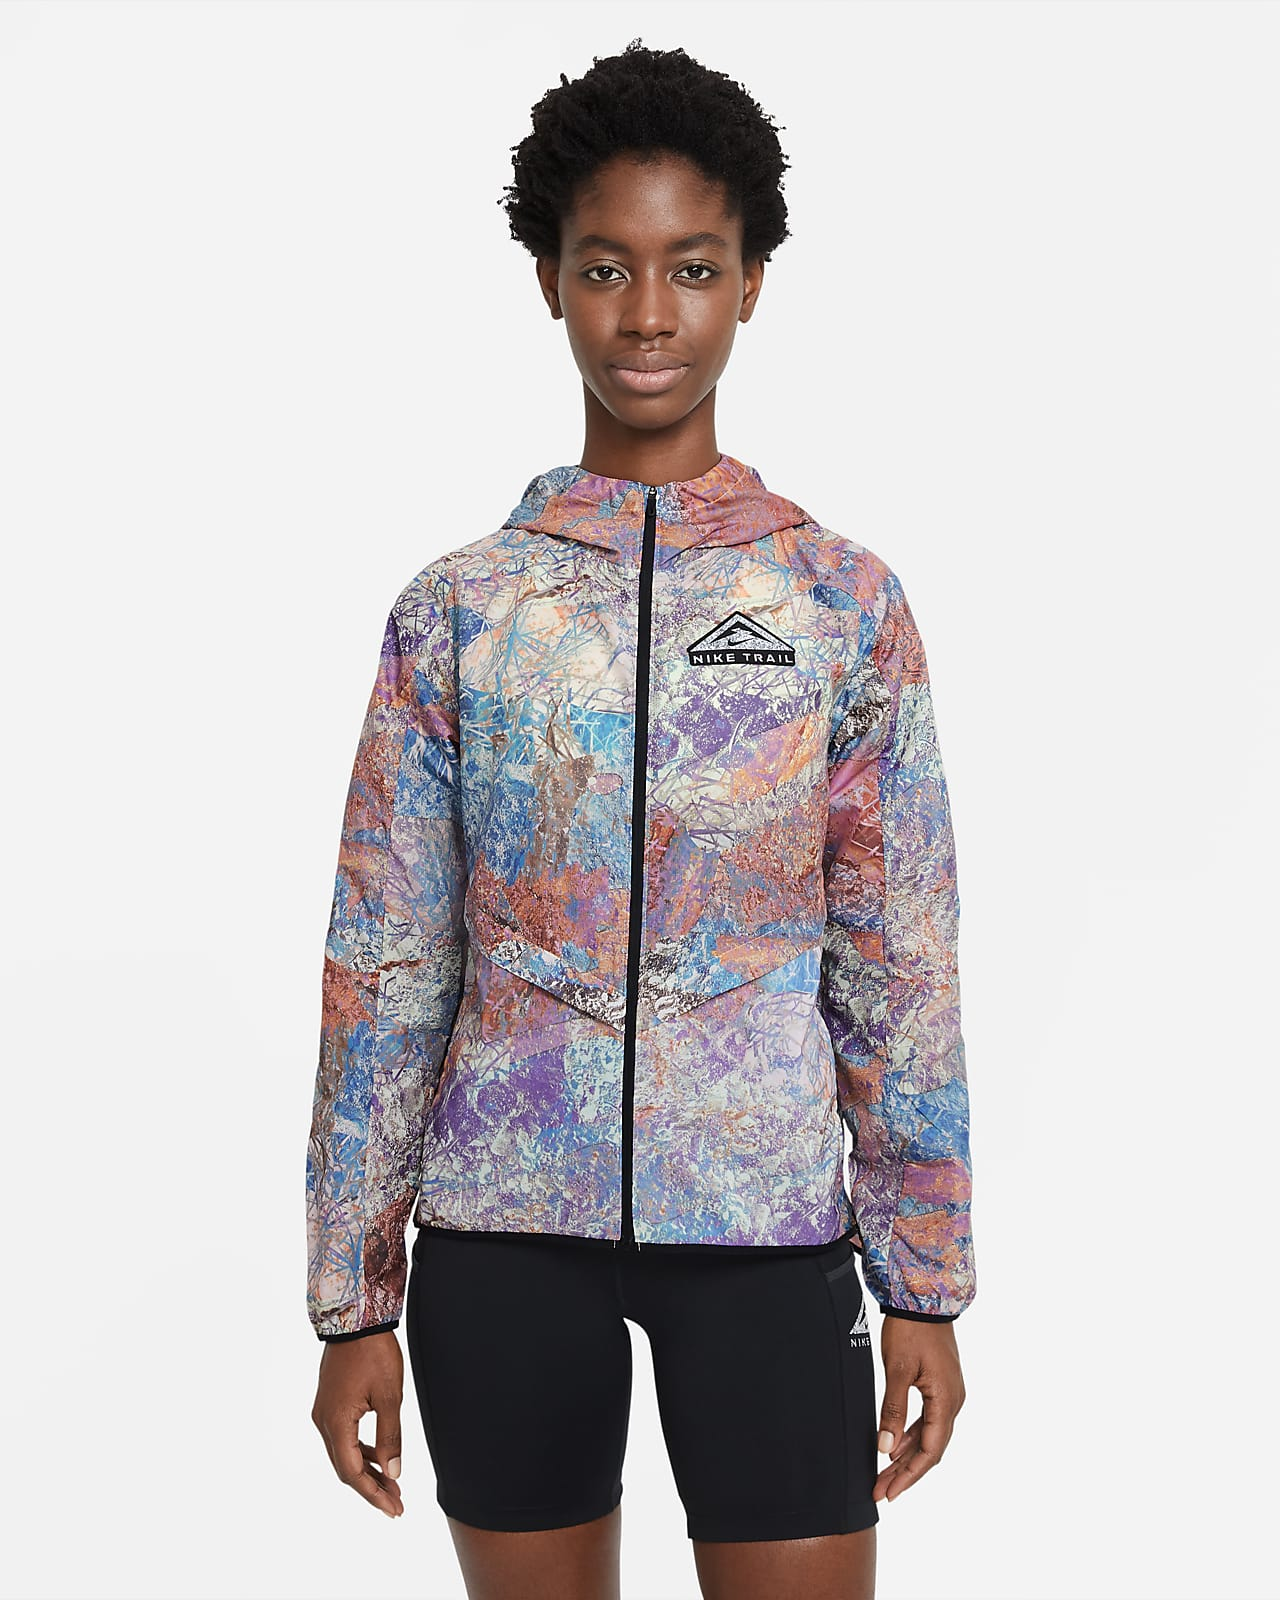 Nike Windrunner Women's Packable Trail-Running Jacket